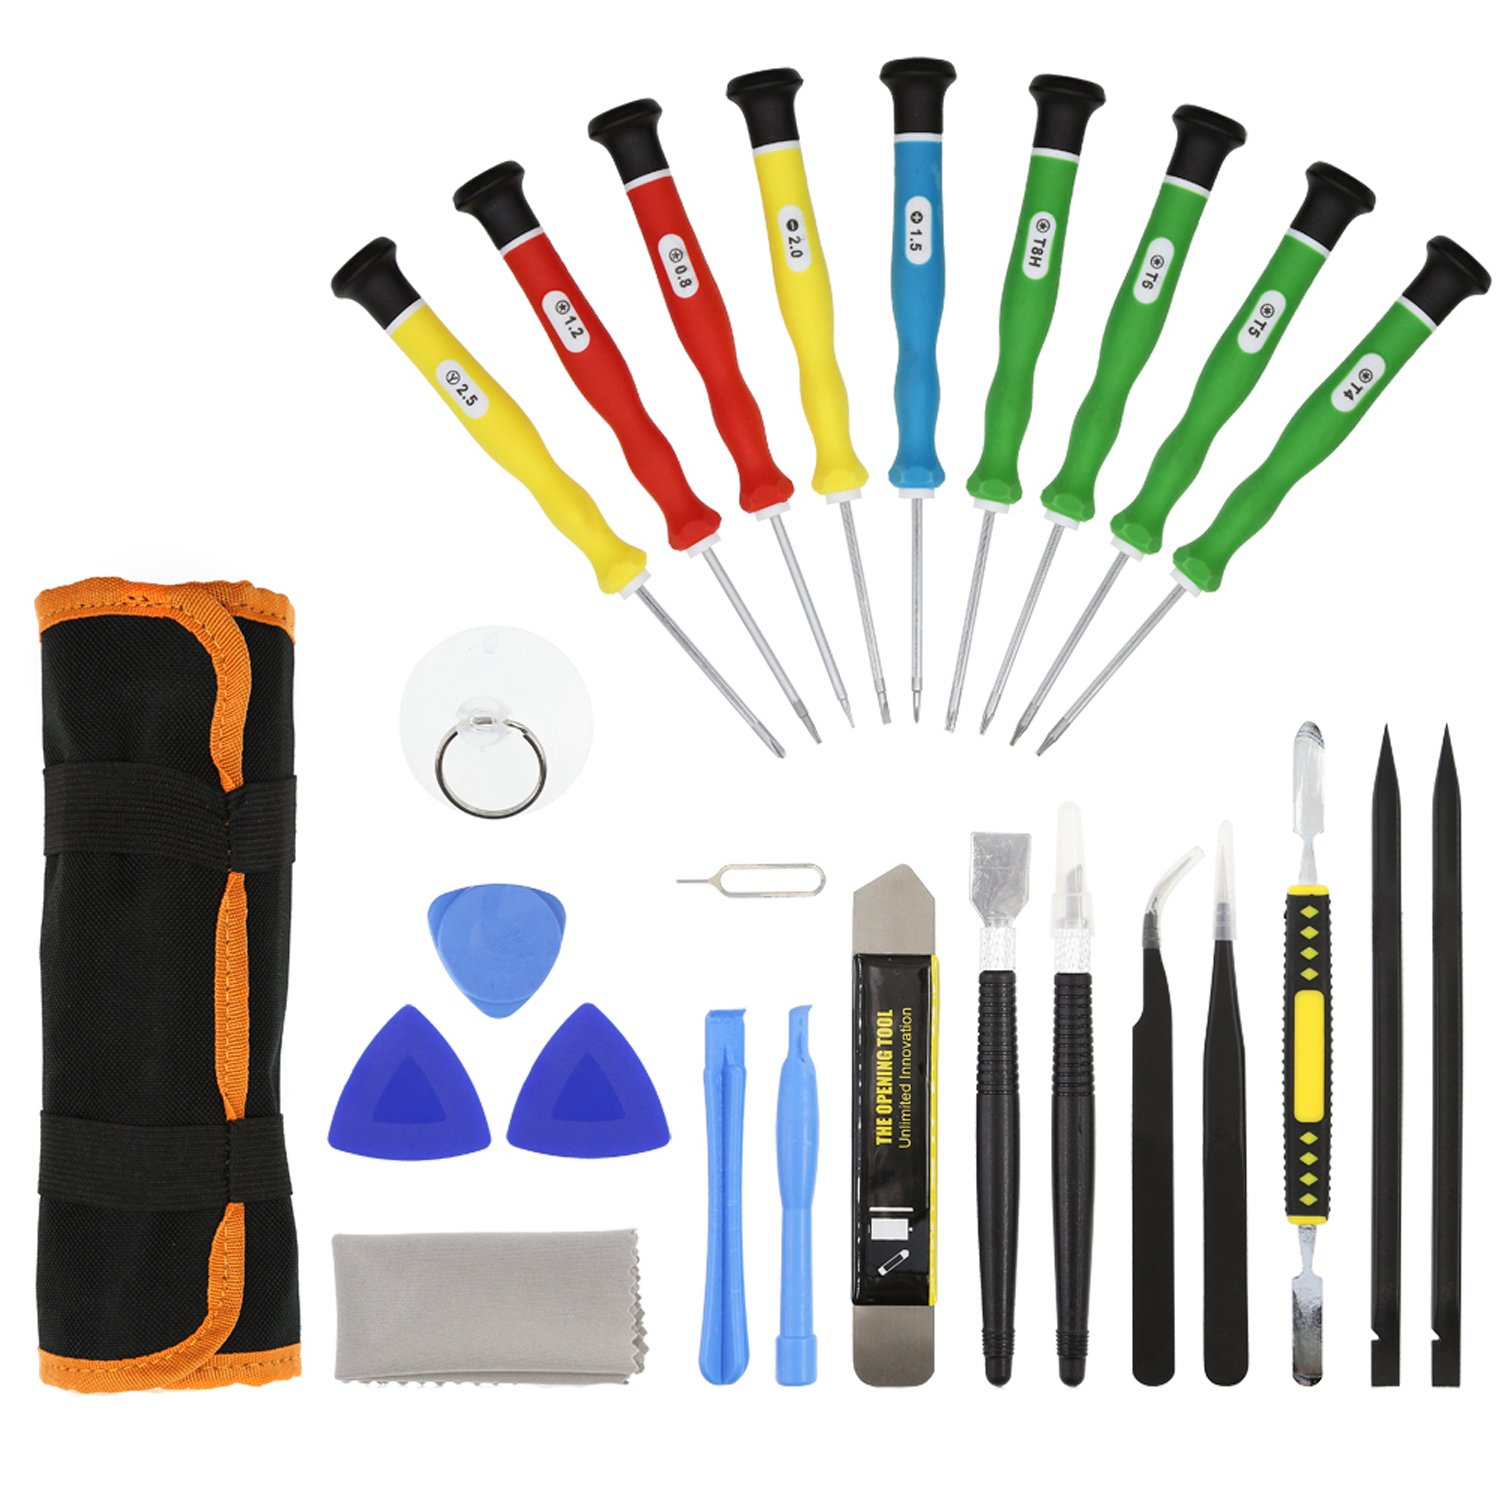 E.Durable Repair Tools Screwdrivers Kit for iPhone iPad iPod Other Cell Phones and Devices –DIY Tool (25in Repair Kit)